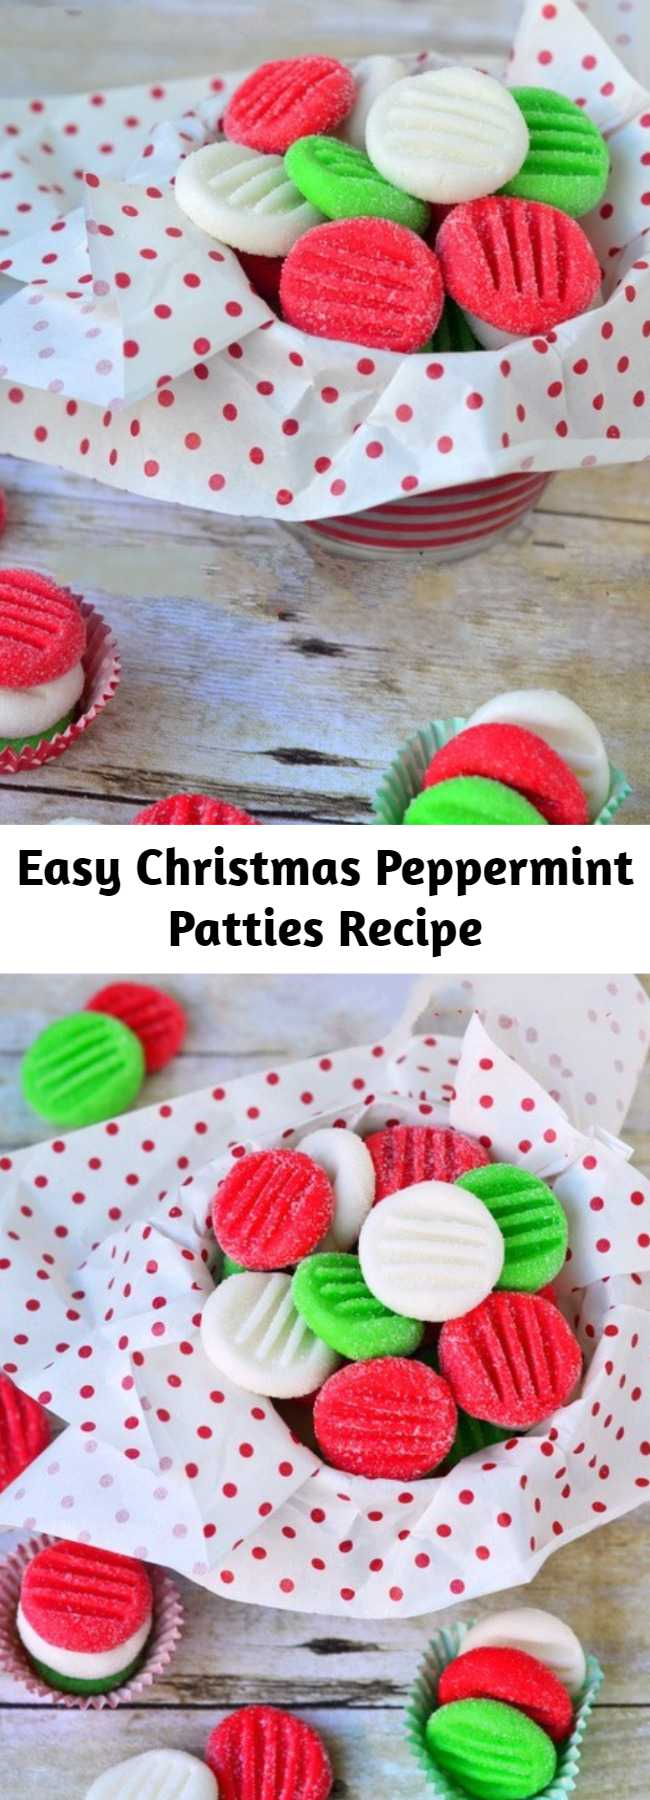 Easy Christmas Peppermint Patties Recipe - You're going to love this Easy Christmas Peppermint Patties recipe! Super easy to make, fantastically festive, and always a hit with kids and adults alike. These holiday treats are the perfect addition to cookie trays and make an excellent gift!